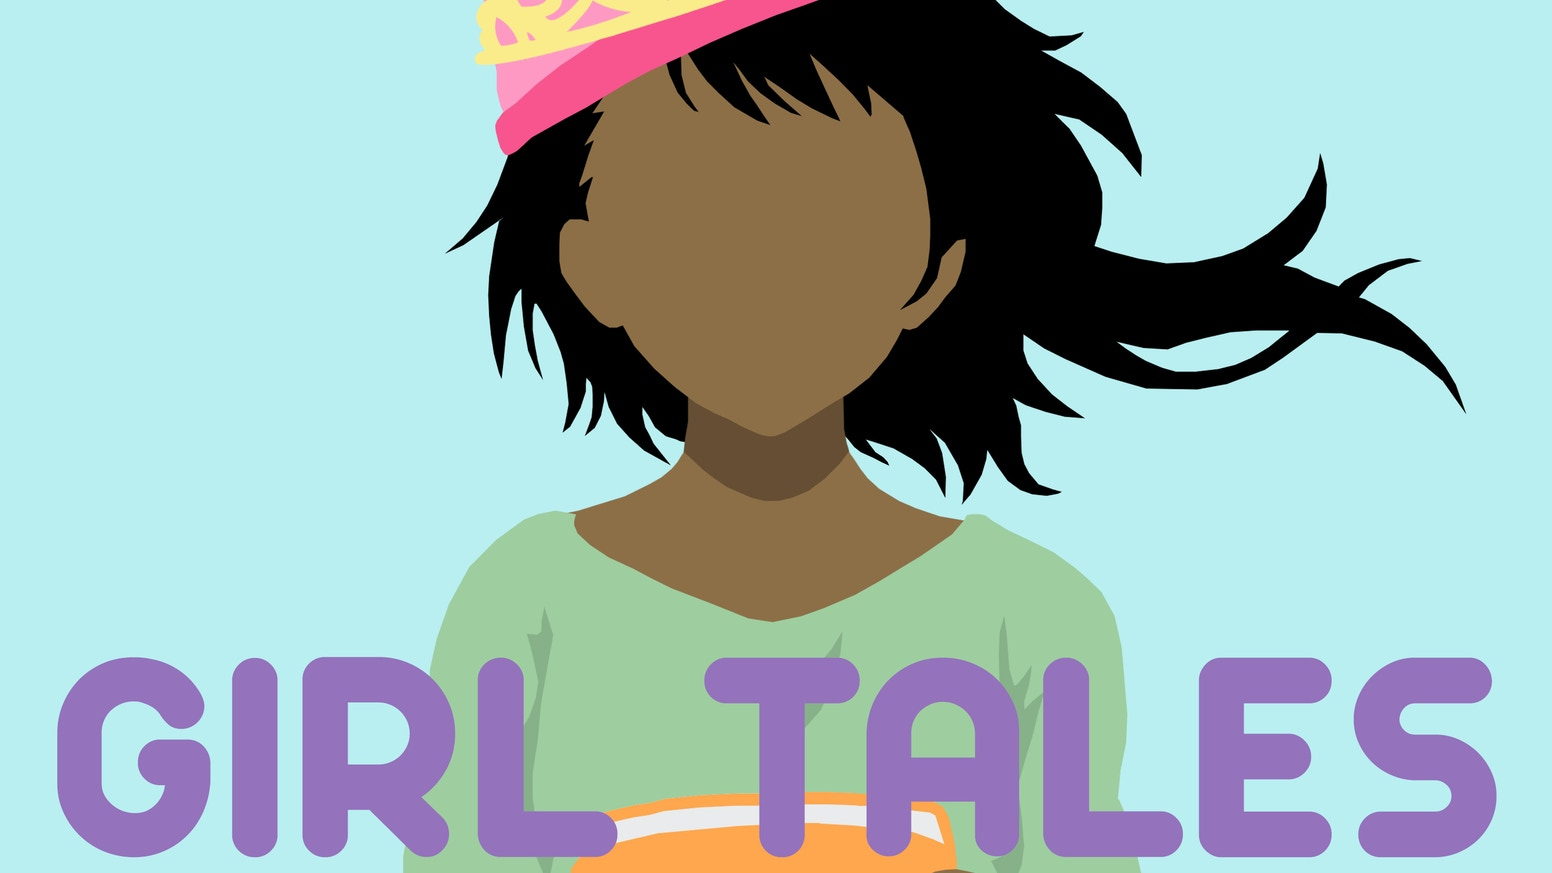 A podcast featuring reimagined fairytales that empower young girls who nevertheless persist.